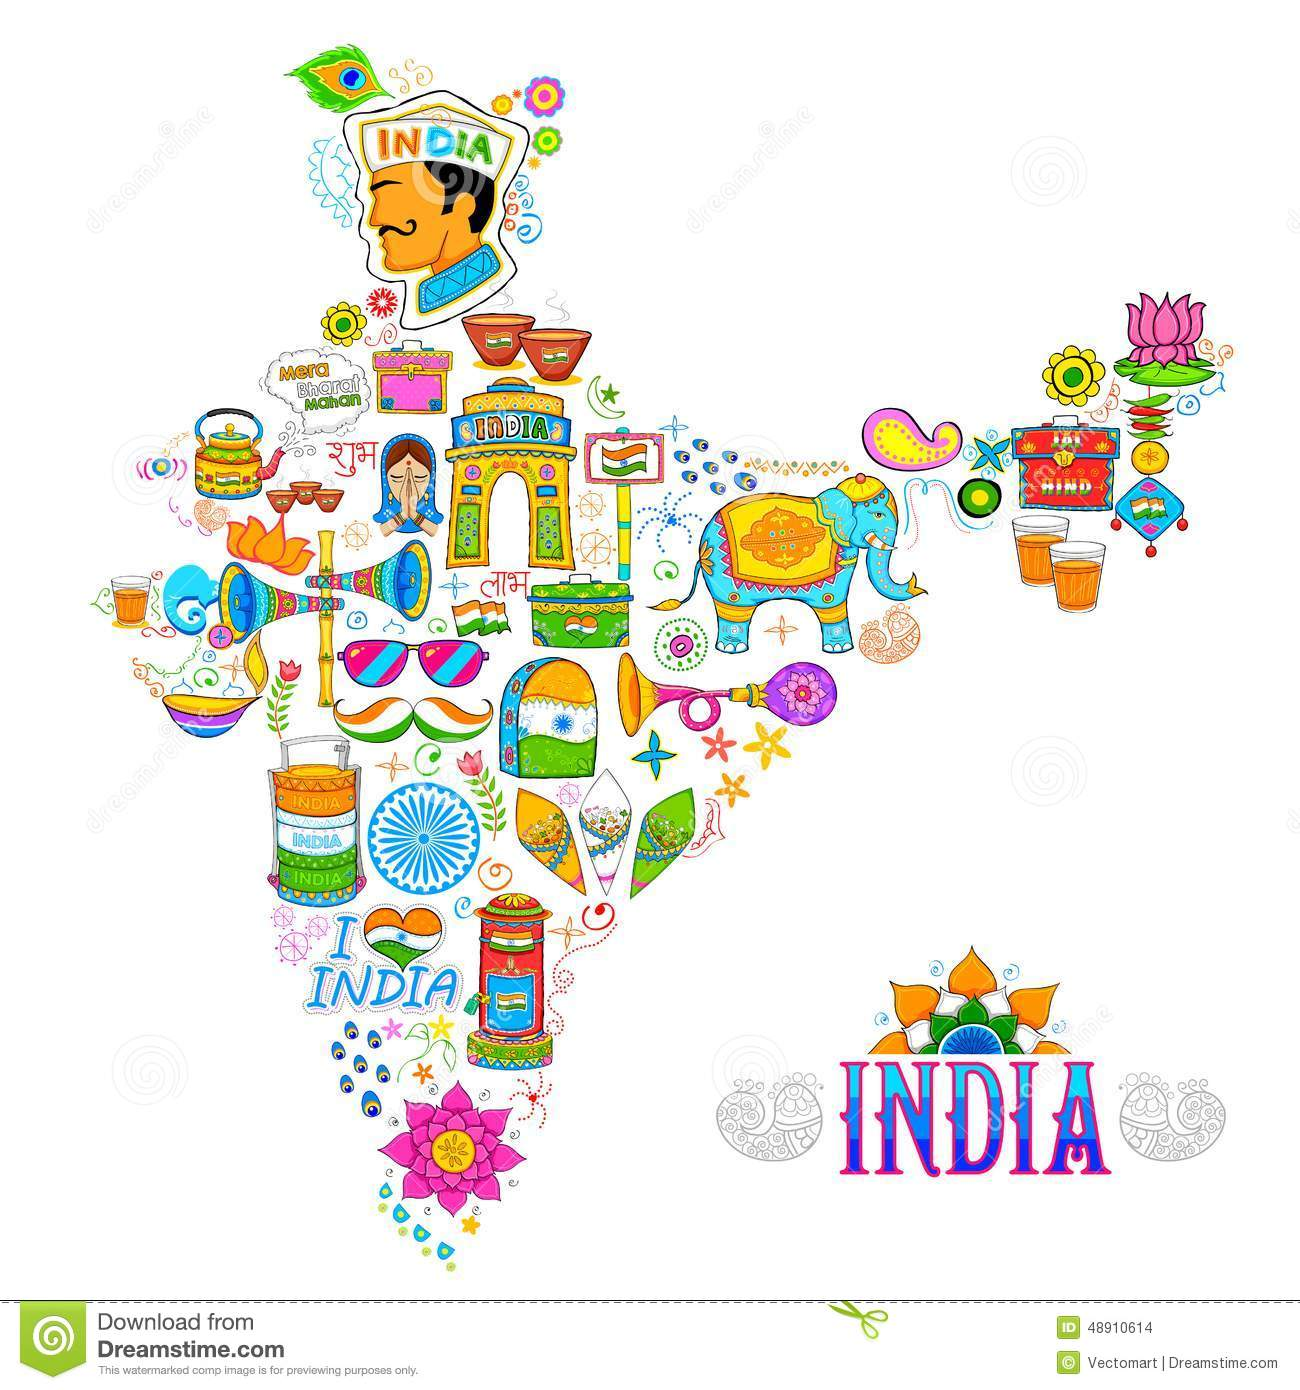 Kitsch Art Of India Map Stock Vector. Illustration Of